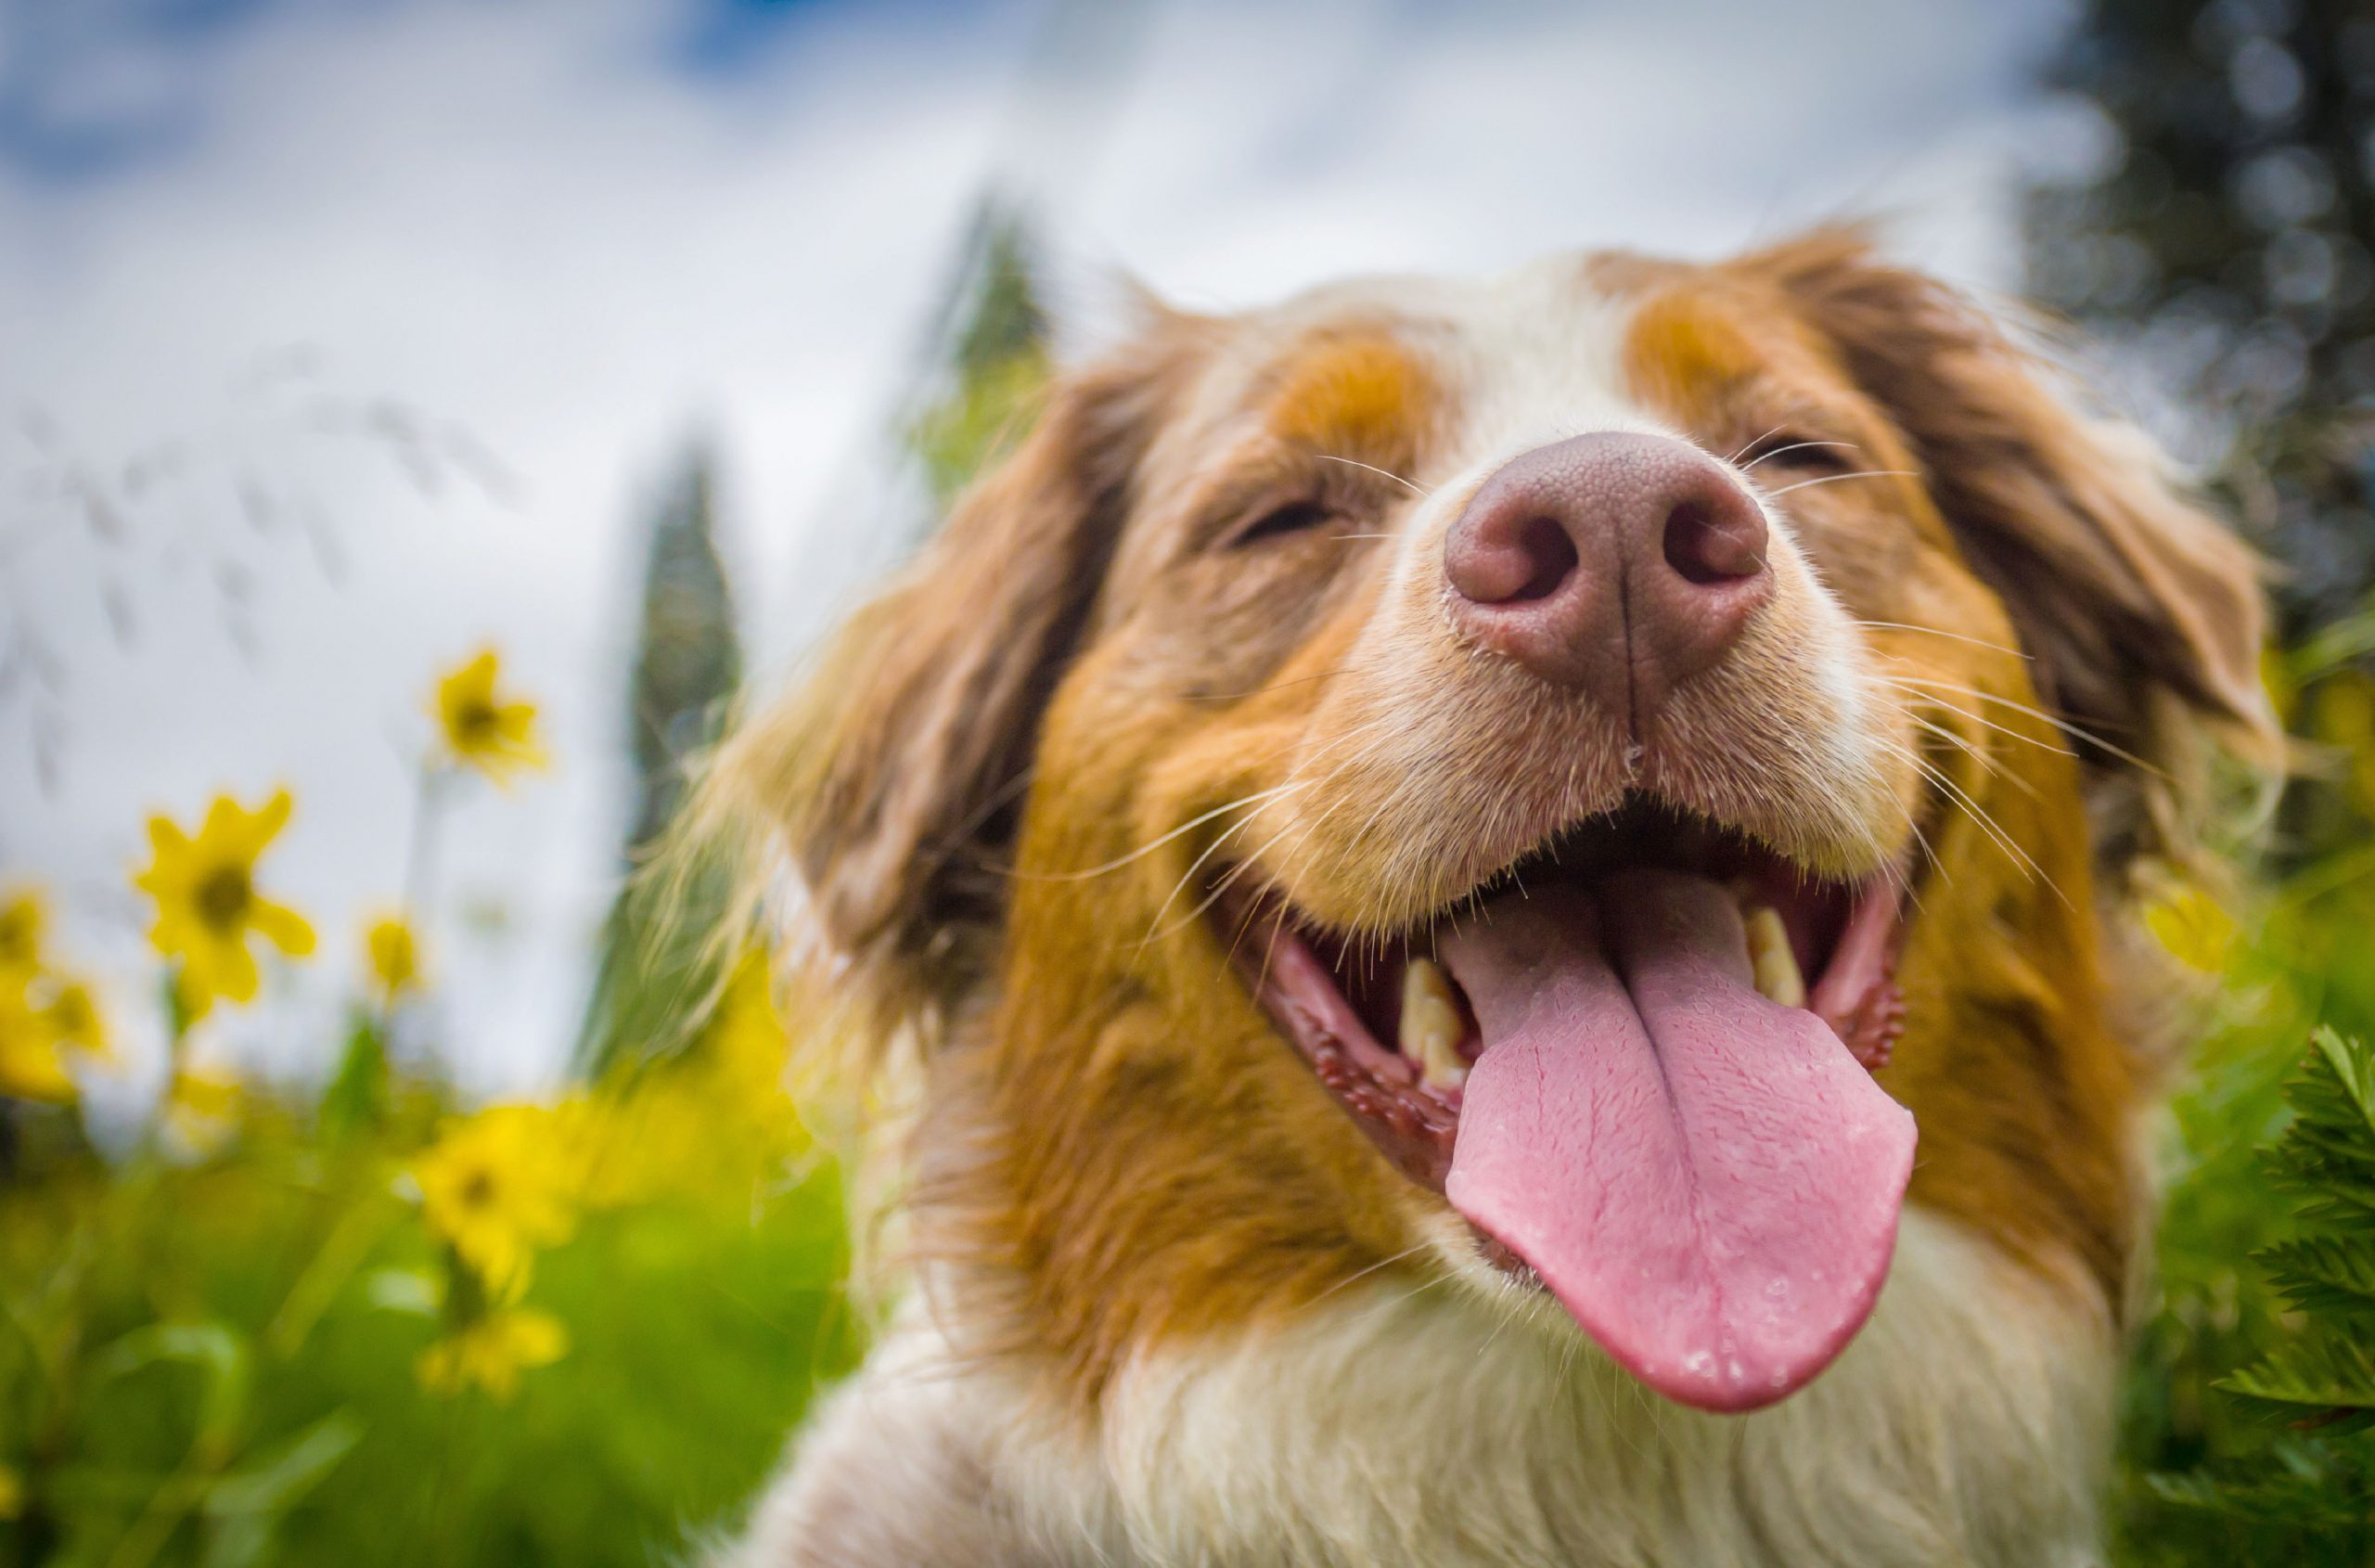 Probiotics for Dogs: Uses, Benefits, and Side Effects